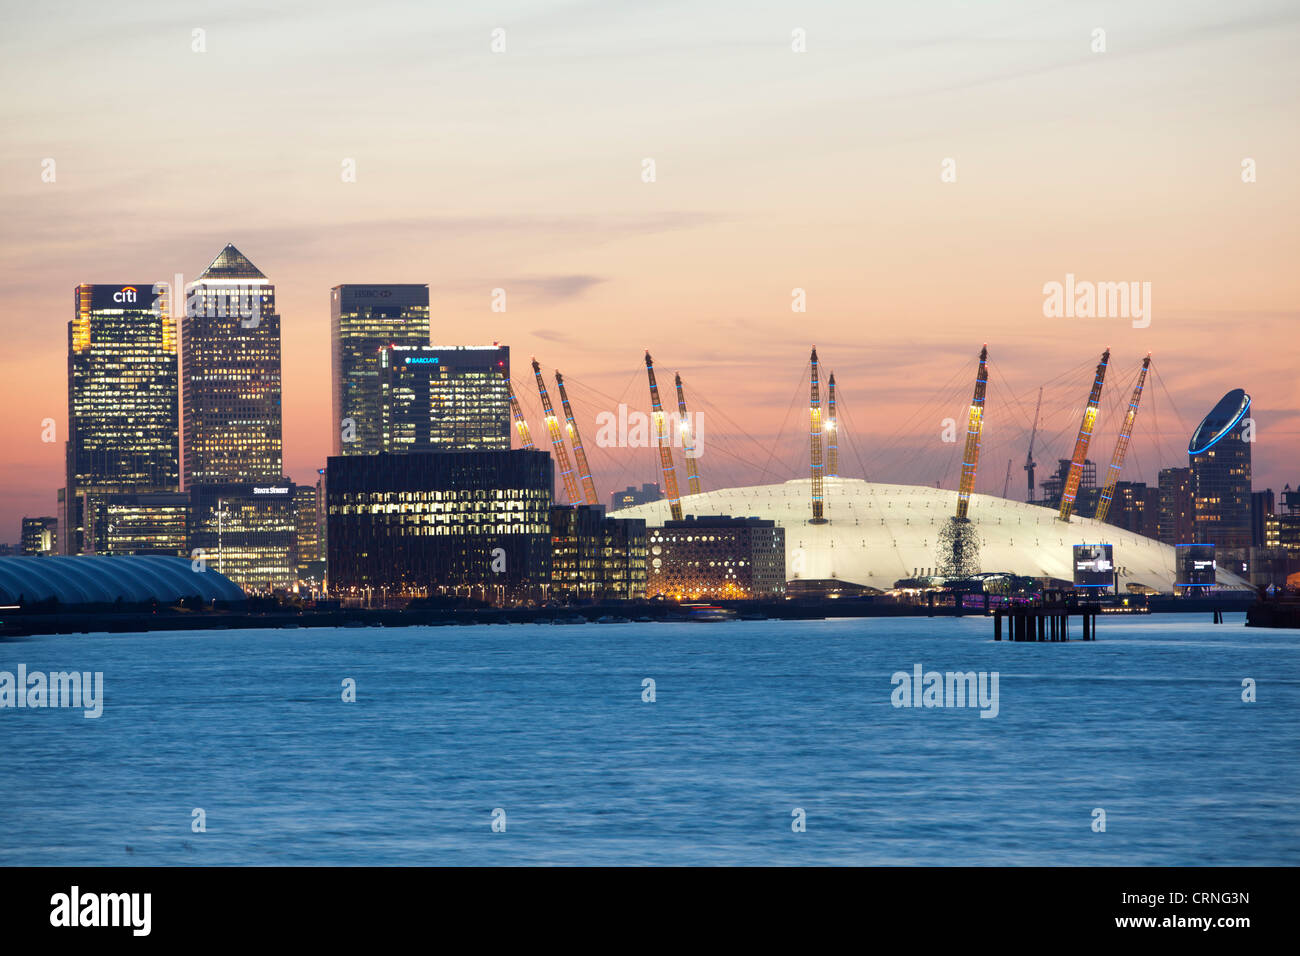 A view down the River Thames towards the O2 Arena and Canary Wharf at sunset. - Stock Image